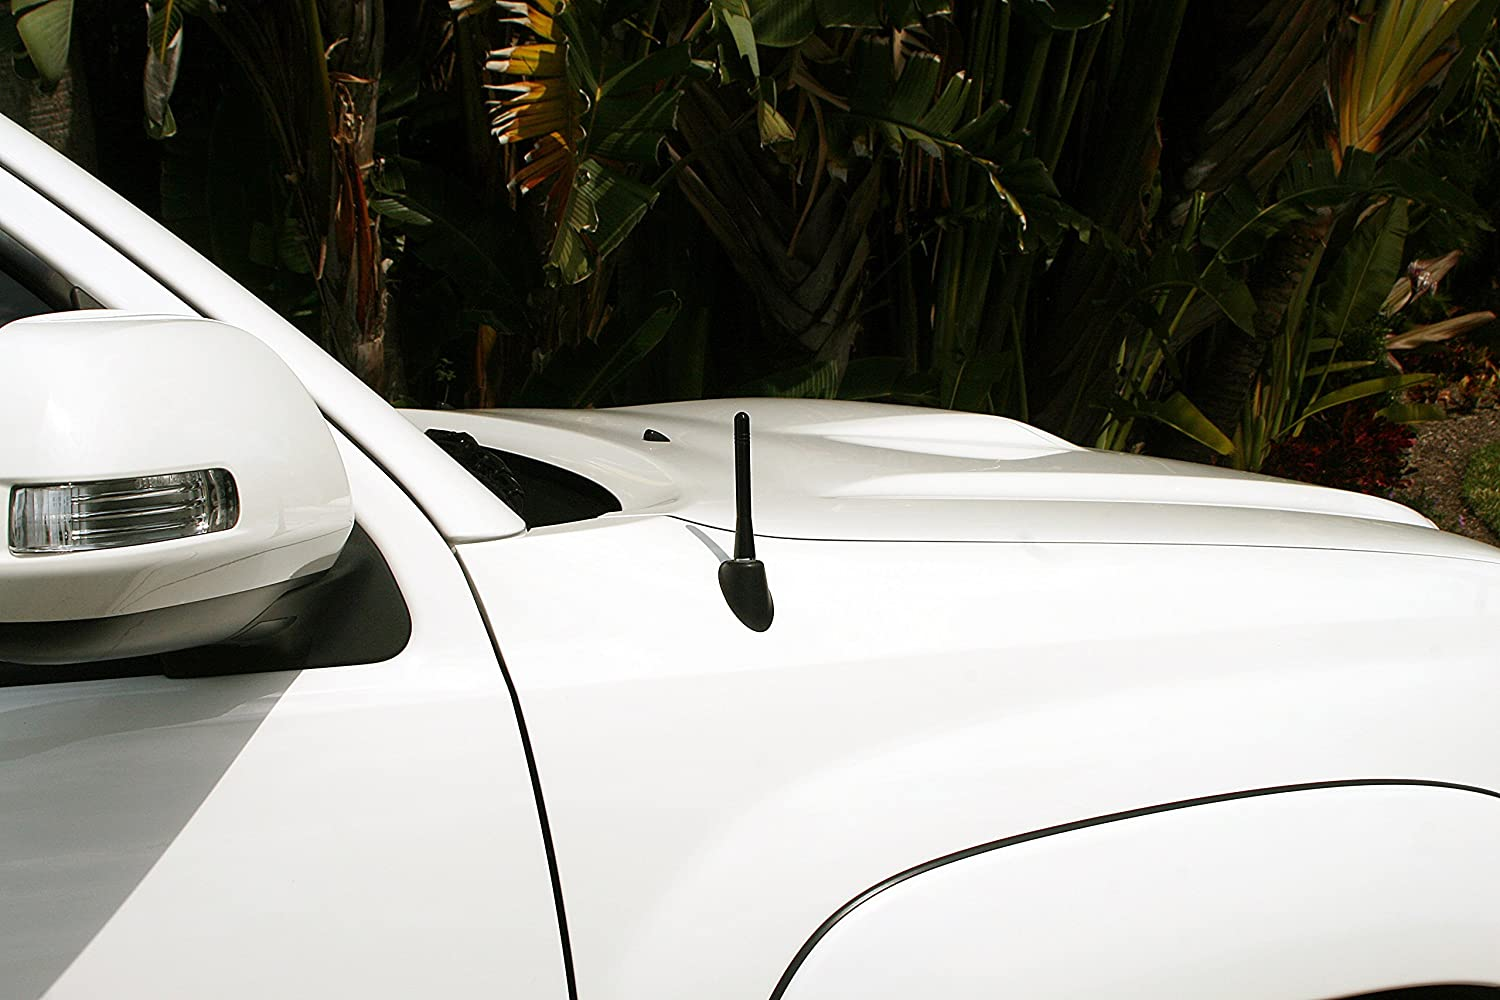 The Spike is Compatible with Ford Thunderbird Black Ammo Antenna with Removable Bottle Opener AntennaMastsRus 1983-1997